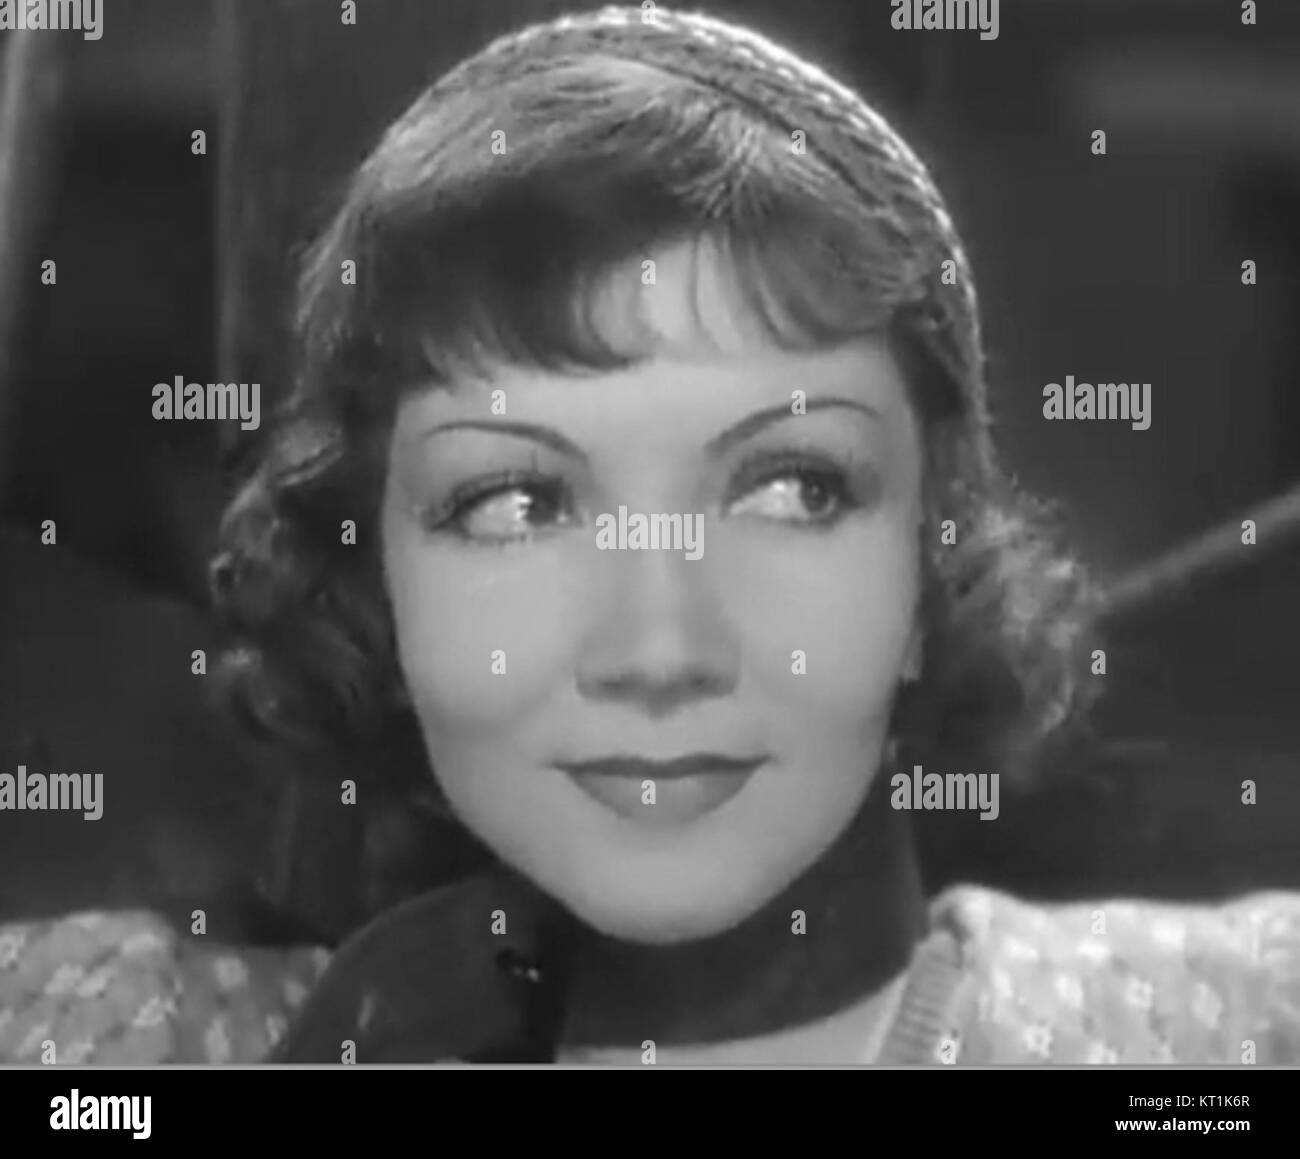 Claudette Colbert In I Cover The Waterfront 2 Stock Photo 169682095